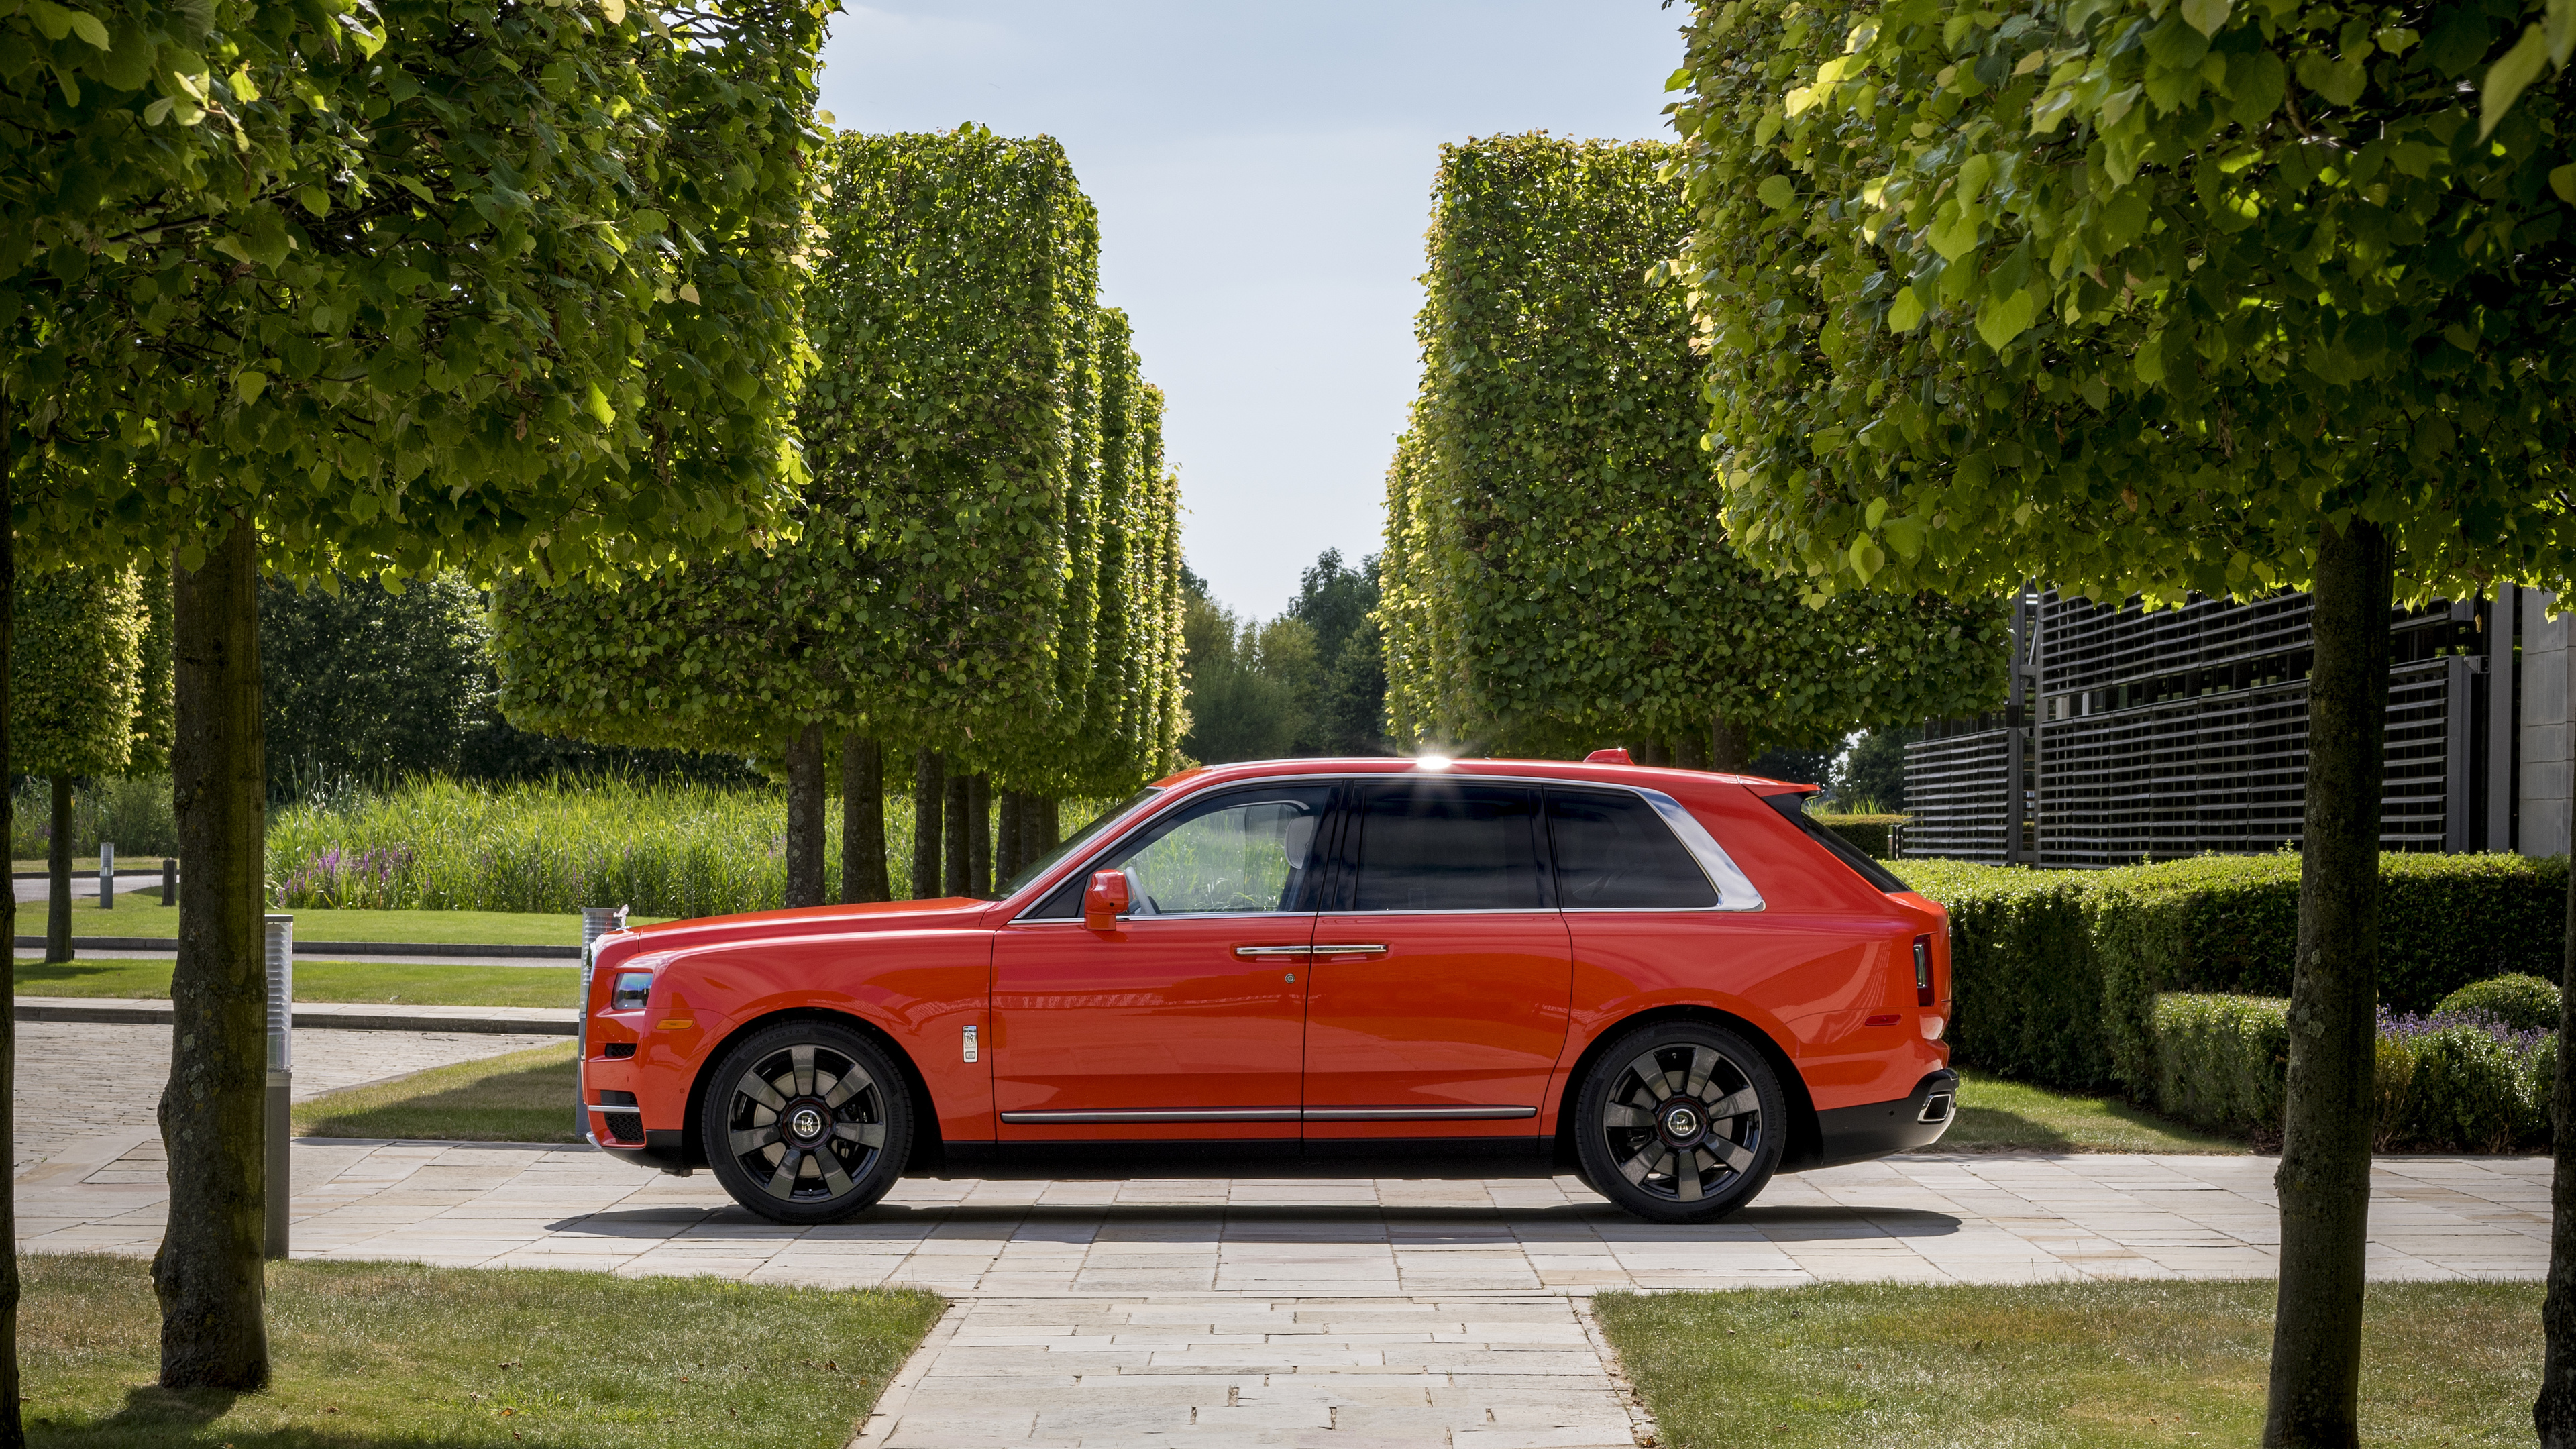 Wallpaper 4k Rolls Royce Cullinan Fux Orange 2019 2019 Cars Wallpapers 4k Wallpapers Cars Wallpapers Hd Wallpapers Rolls Royce Cullinan Wallpapers Rolls Royce Wallpapers